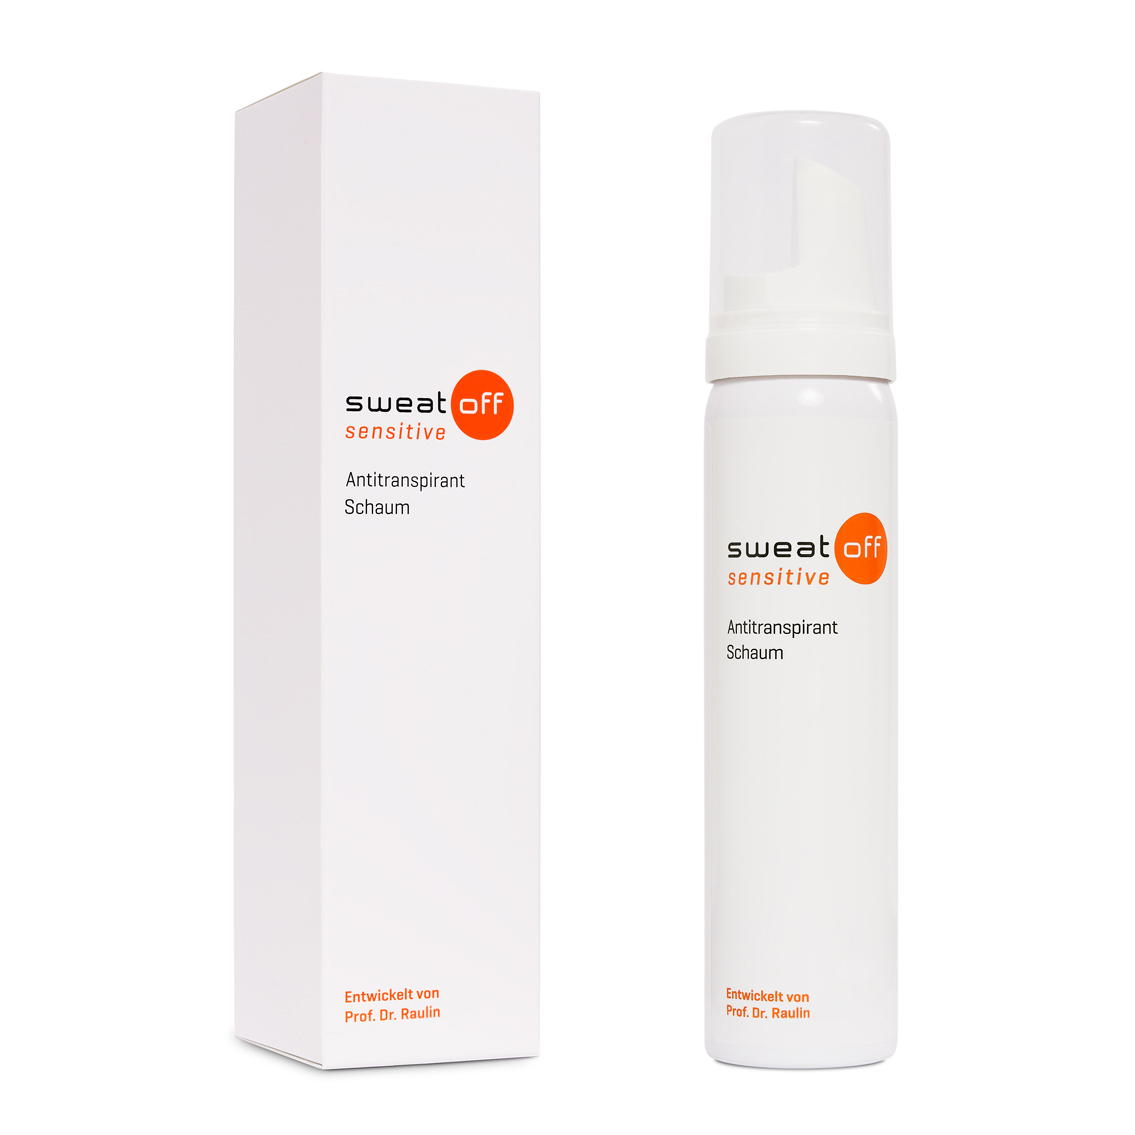 Sweat-Off sensitive Antitranspirant Schaum 75ml